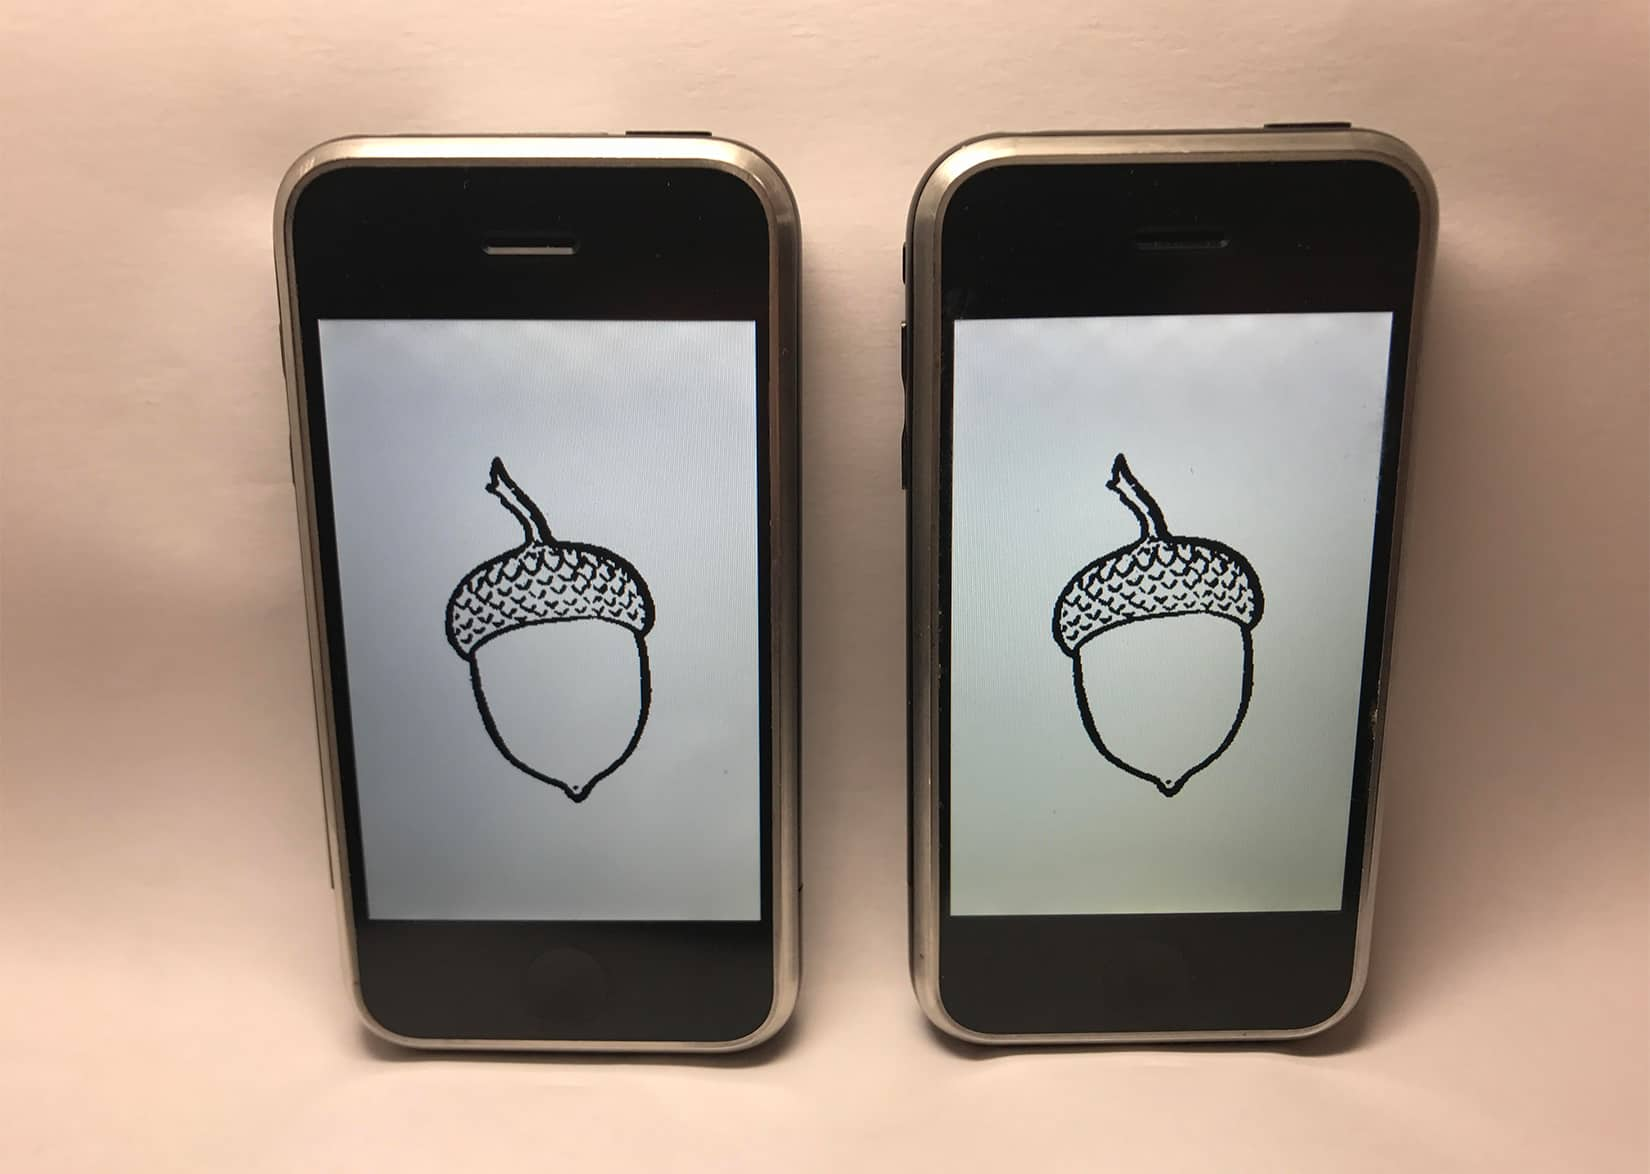 iPhone prototypes